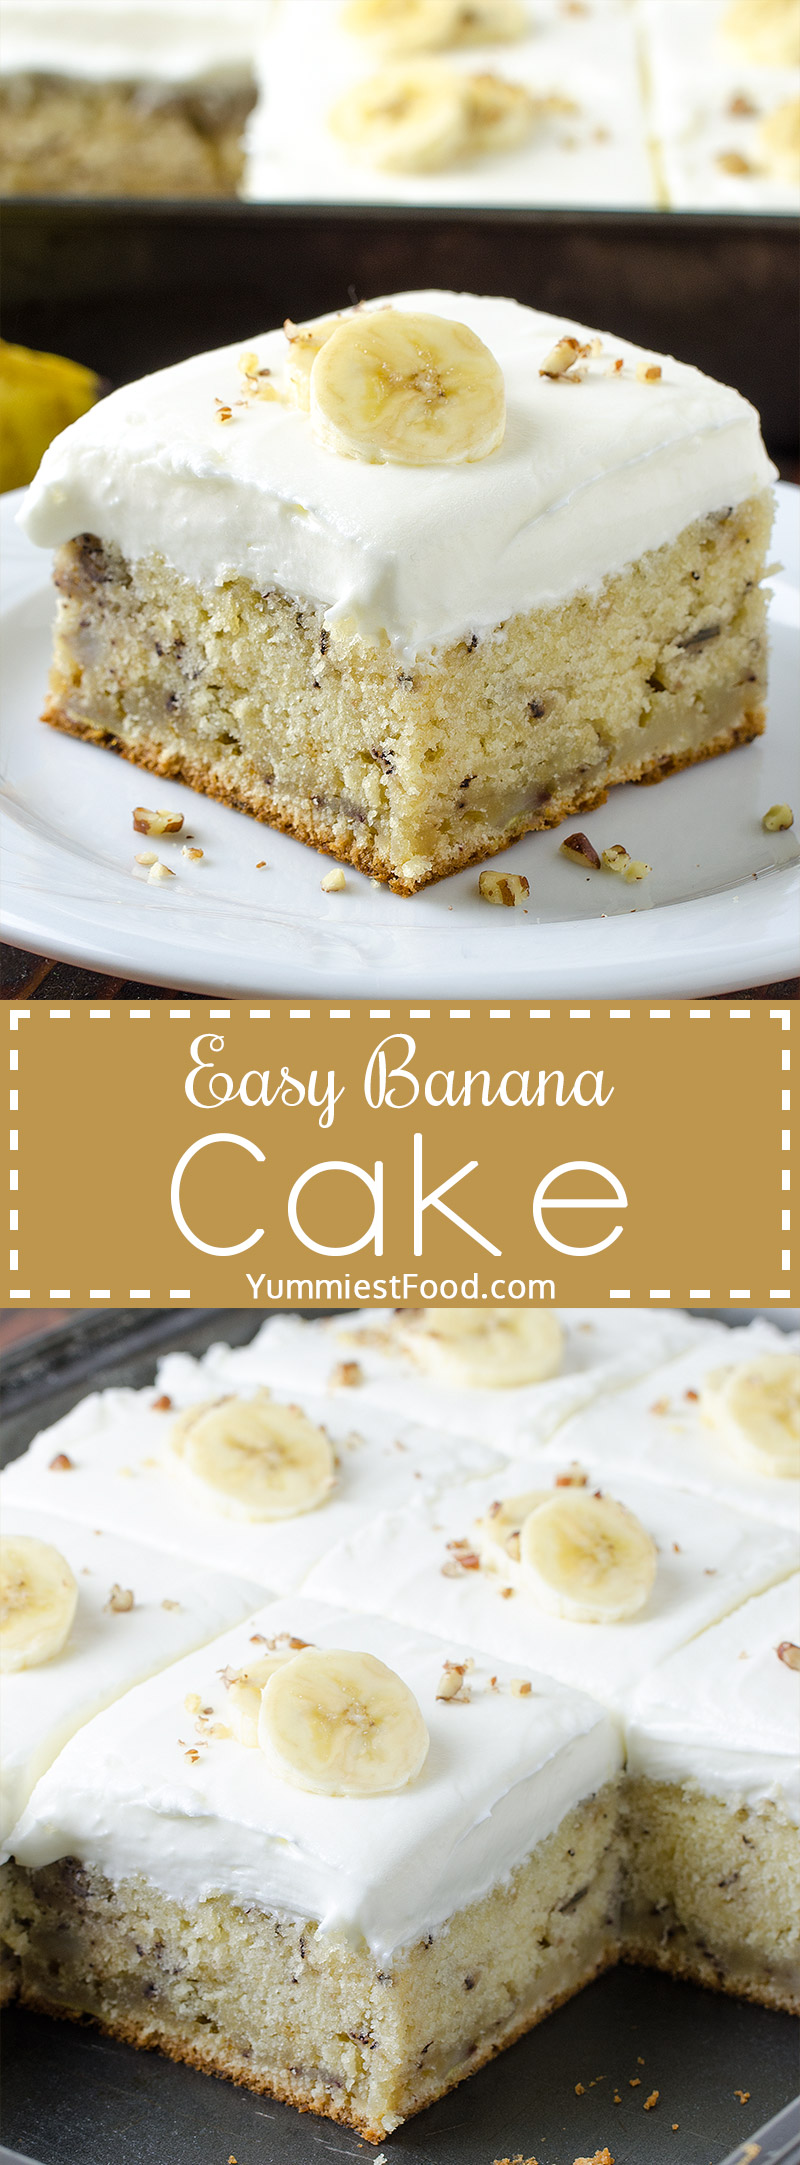 EASY BANANA CAKE - It's soft, sweet with the perfect amount of banana and it's topped with cream cheese frosting